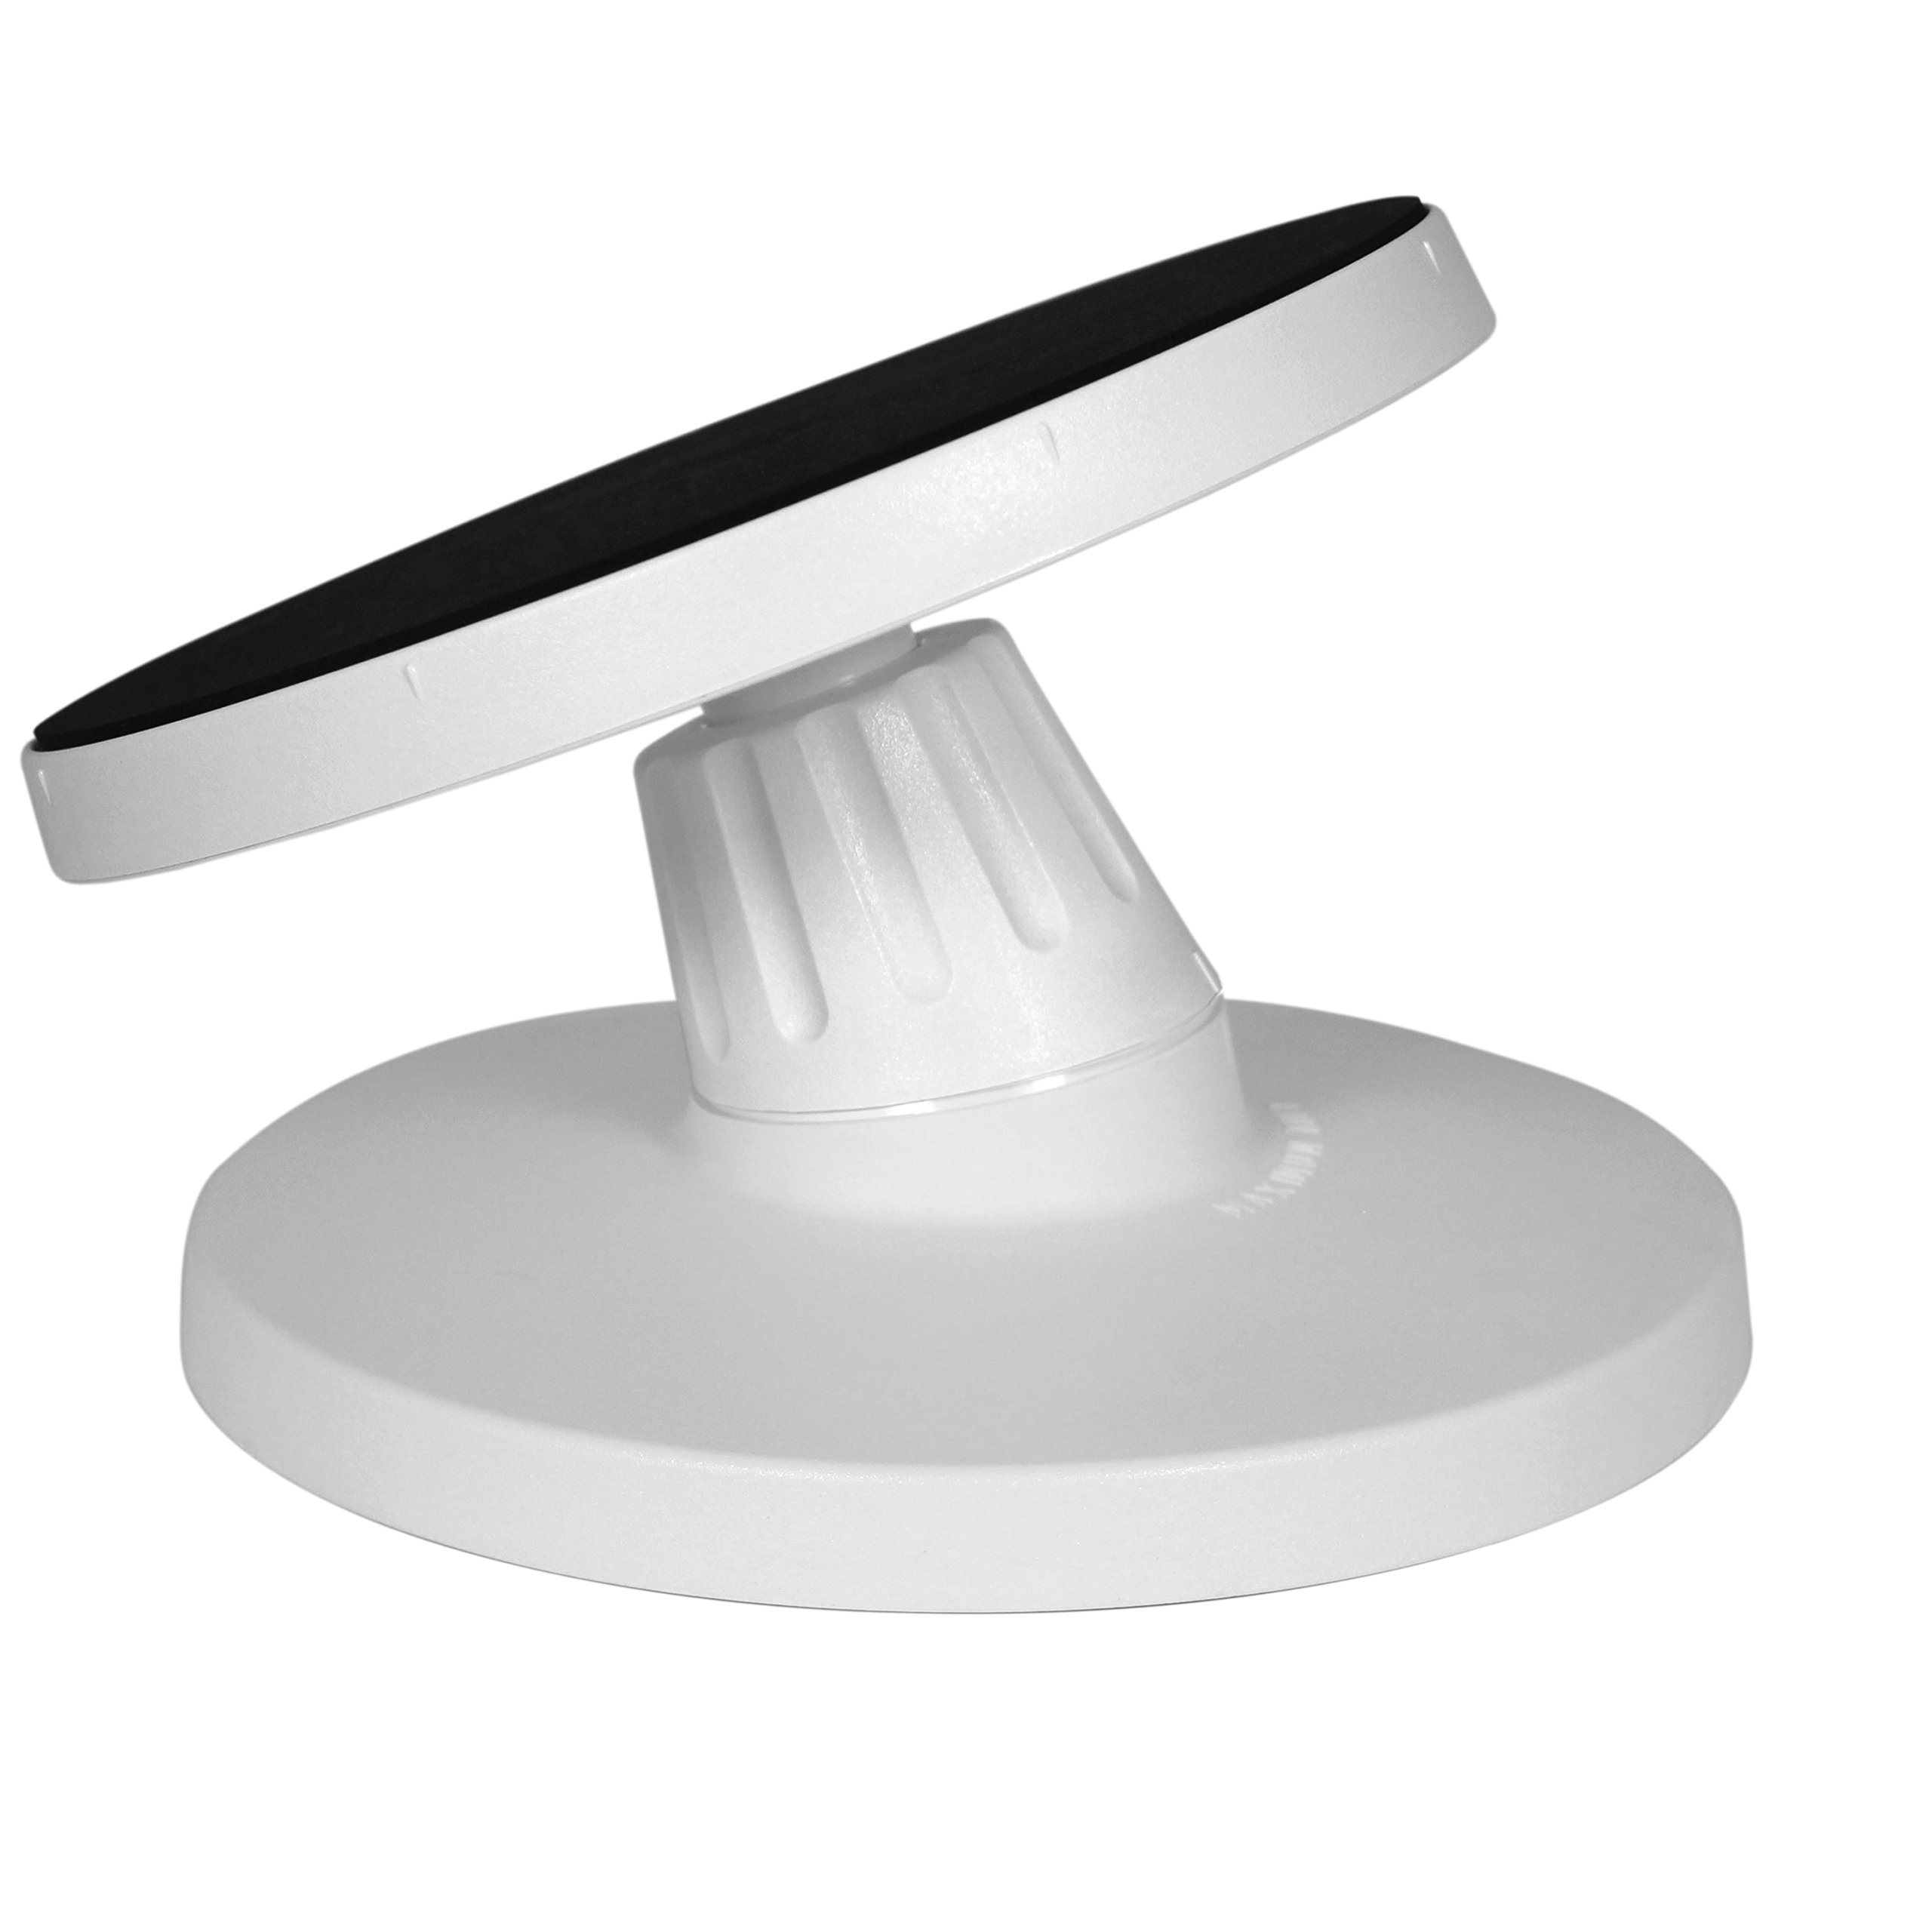 CK Products TT460 PME Tilting Turntable, for Cake Decorating, Standard, White by CK Products (Image #2)